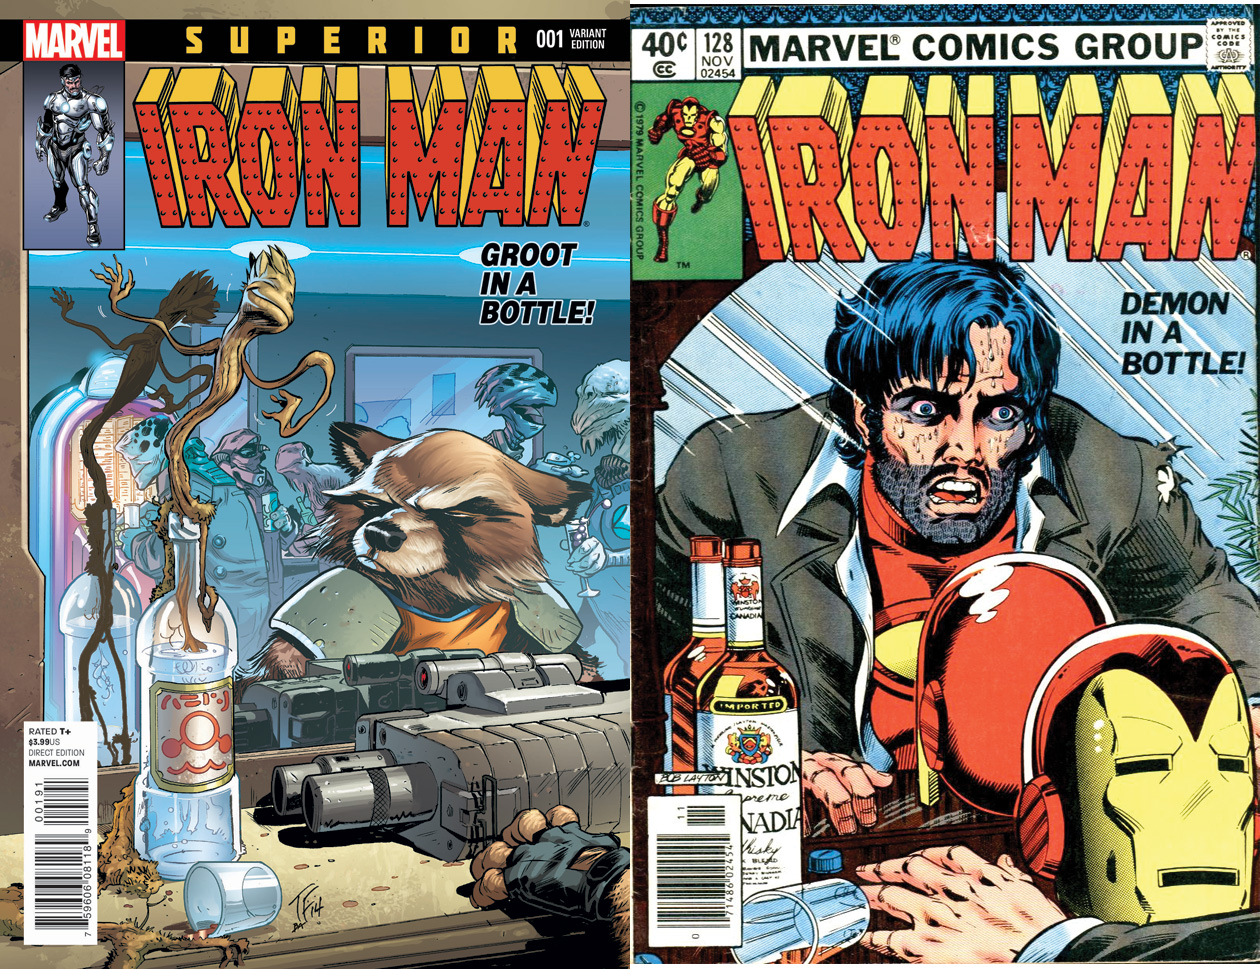 Superior Iron Man #1 variant by Tom Fowler